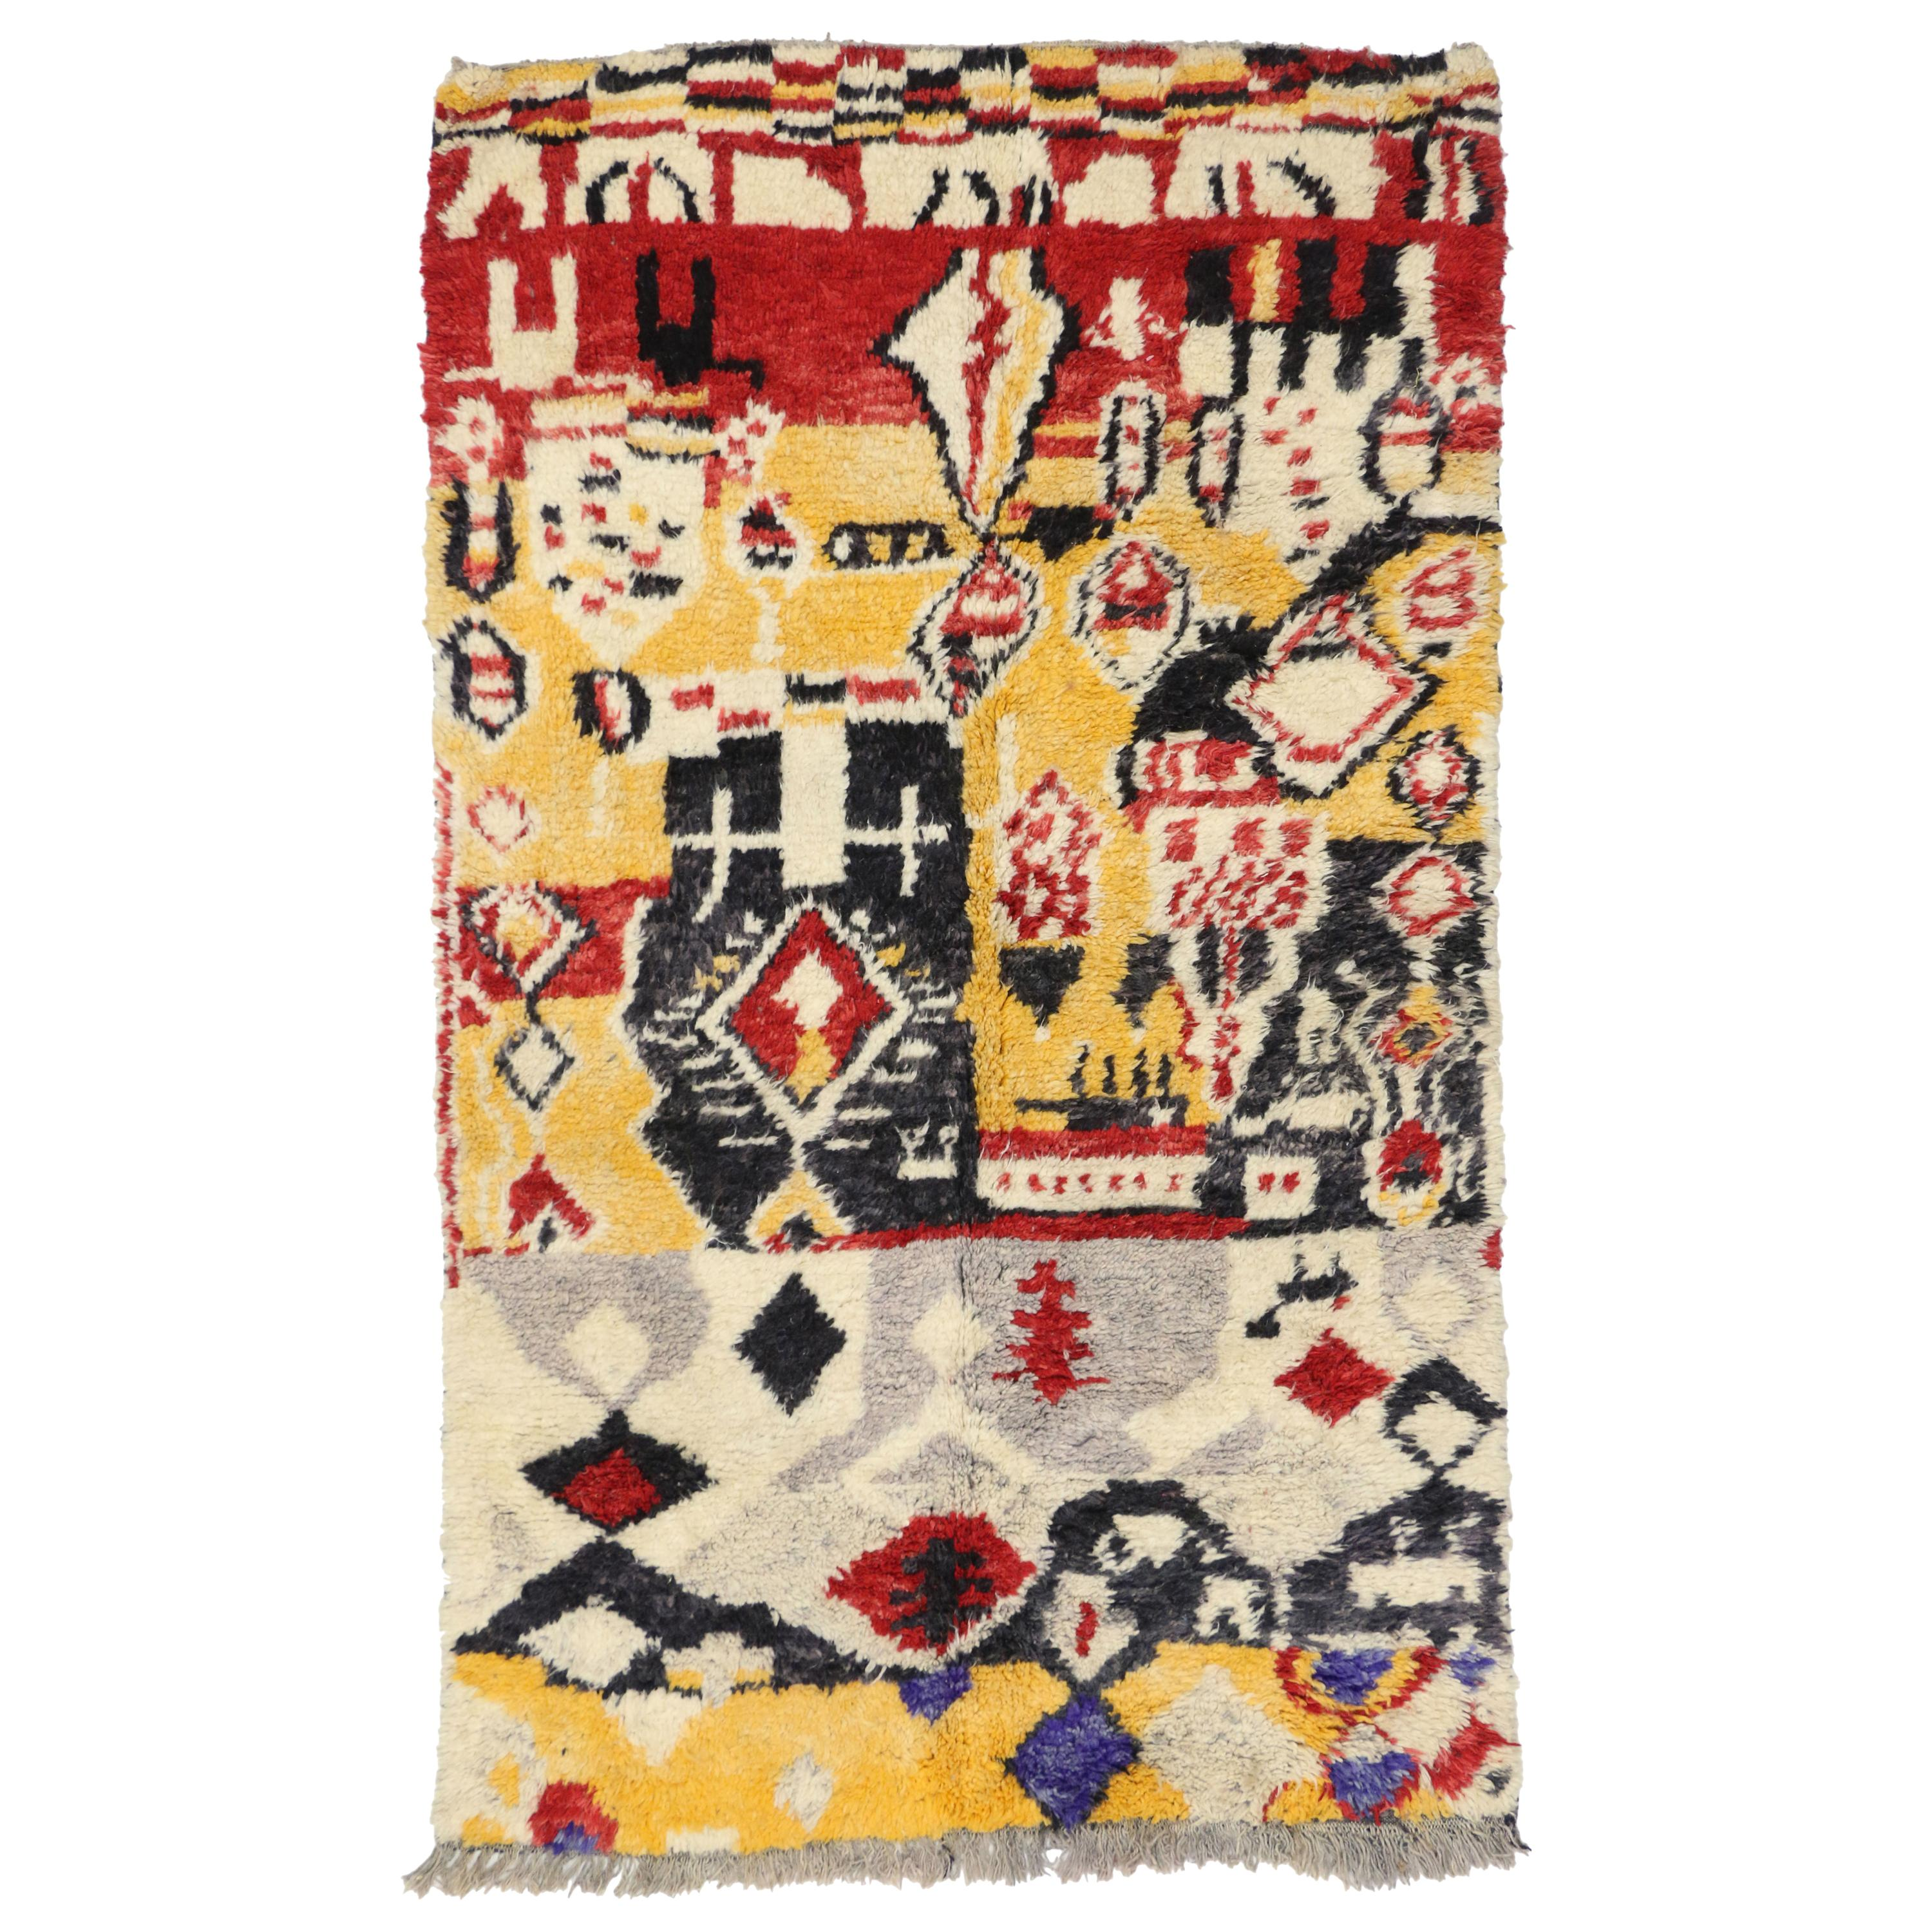 New Contemporary Berber Moroccan Rug with Expressionist Post-Modern Style